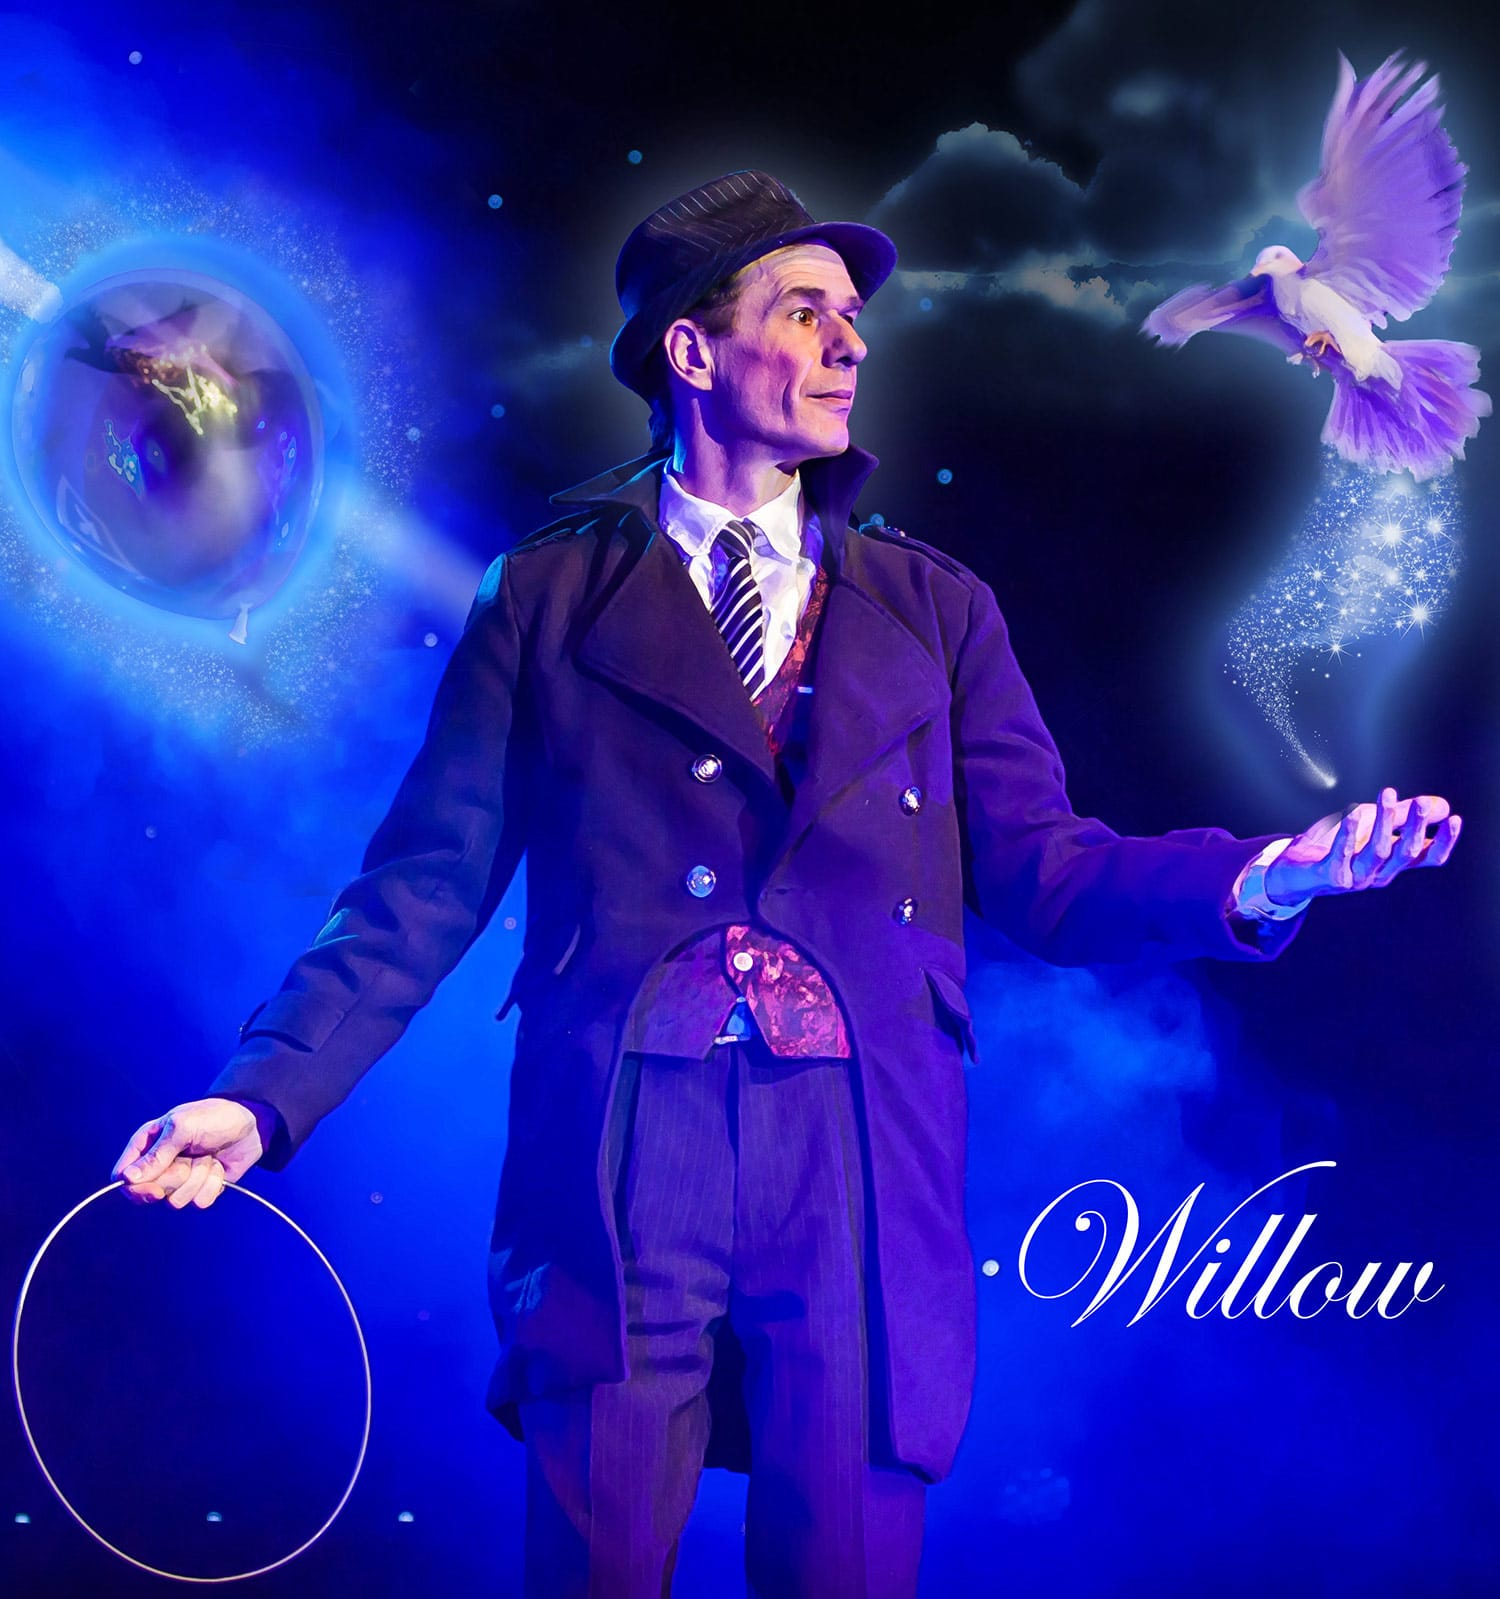 willow-magicien-b-bird